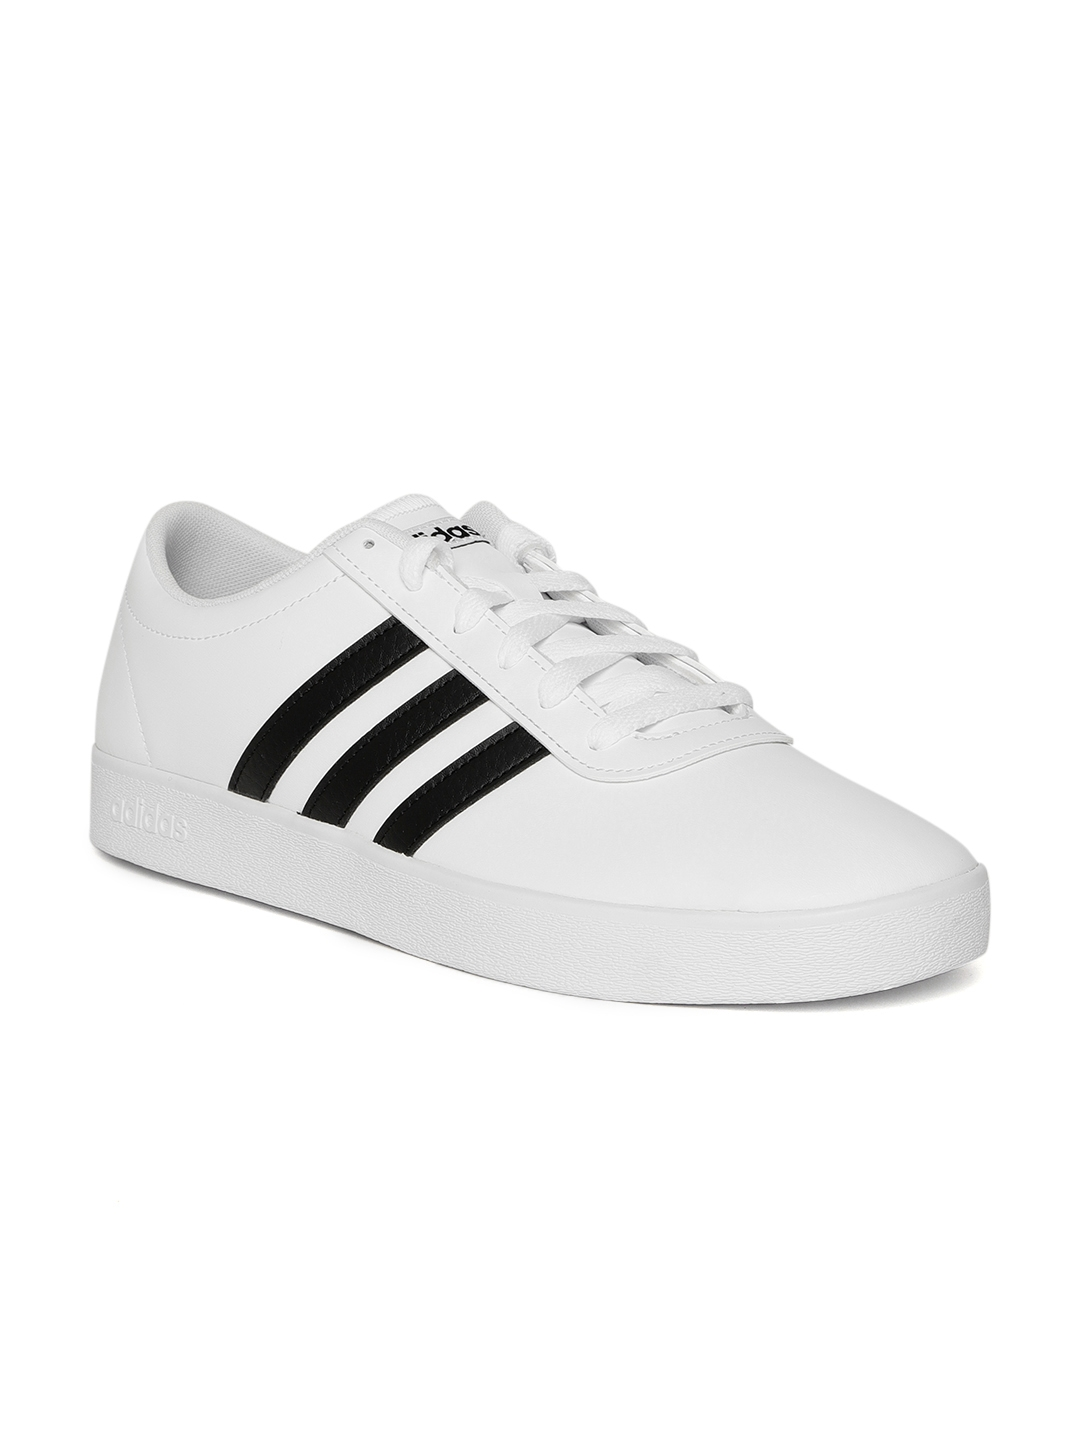 3a26228dfa54 Buy ADIDAS Originals Men White Easy VULC 2.0 Skateboarding Shoes ...